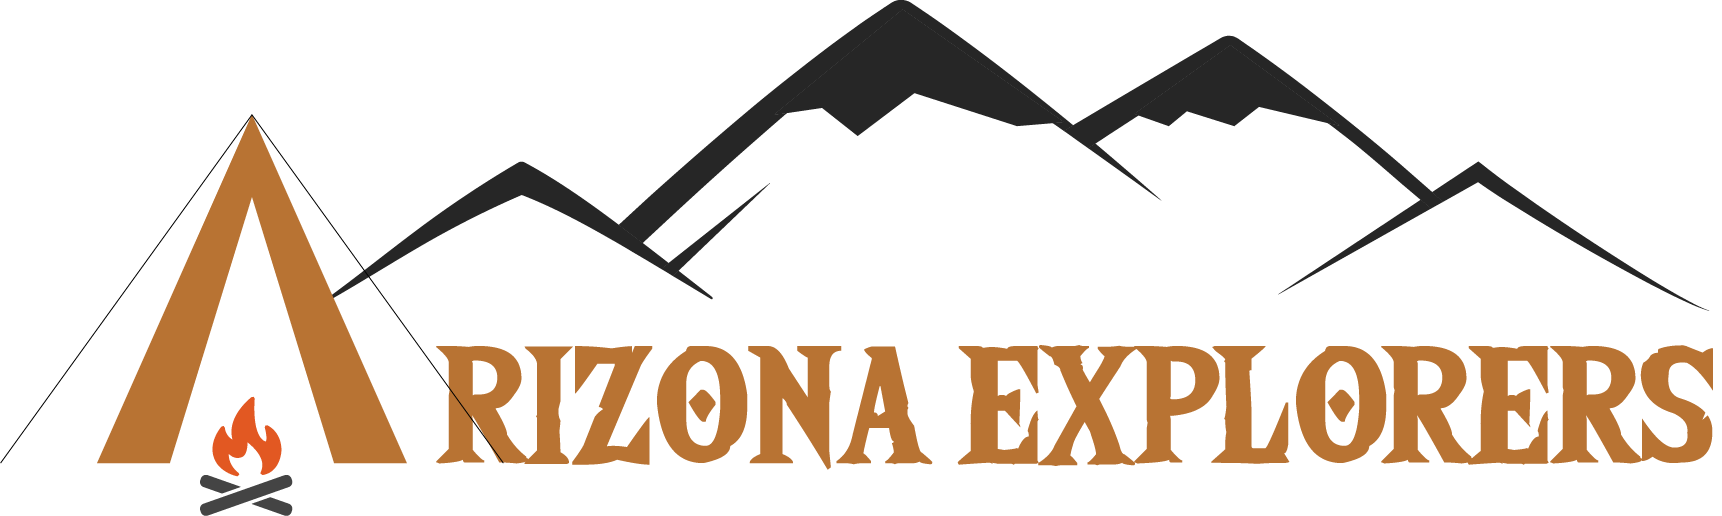 Arizona Explorers